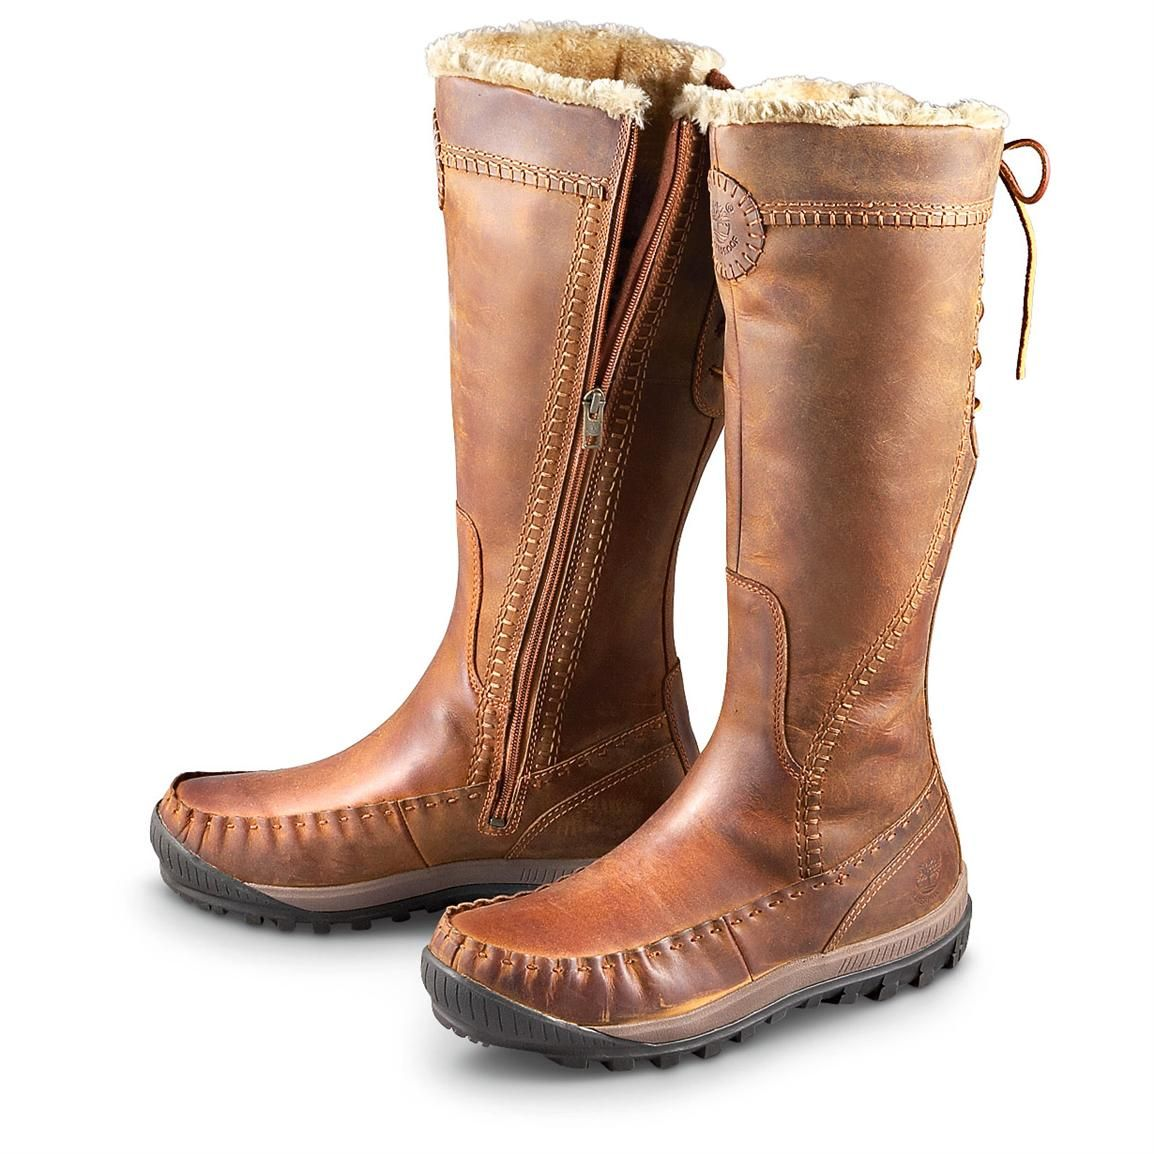 Cool: Women's Timberland(R) Earthkeepers(TM) Mount Holly Boots, Brown